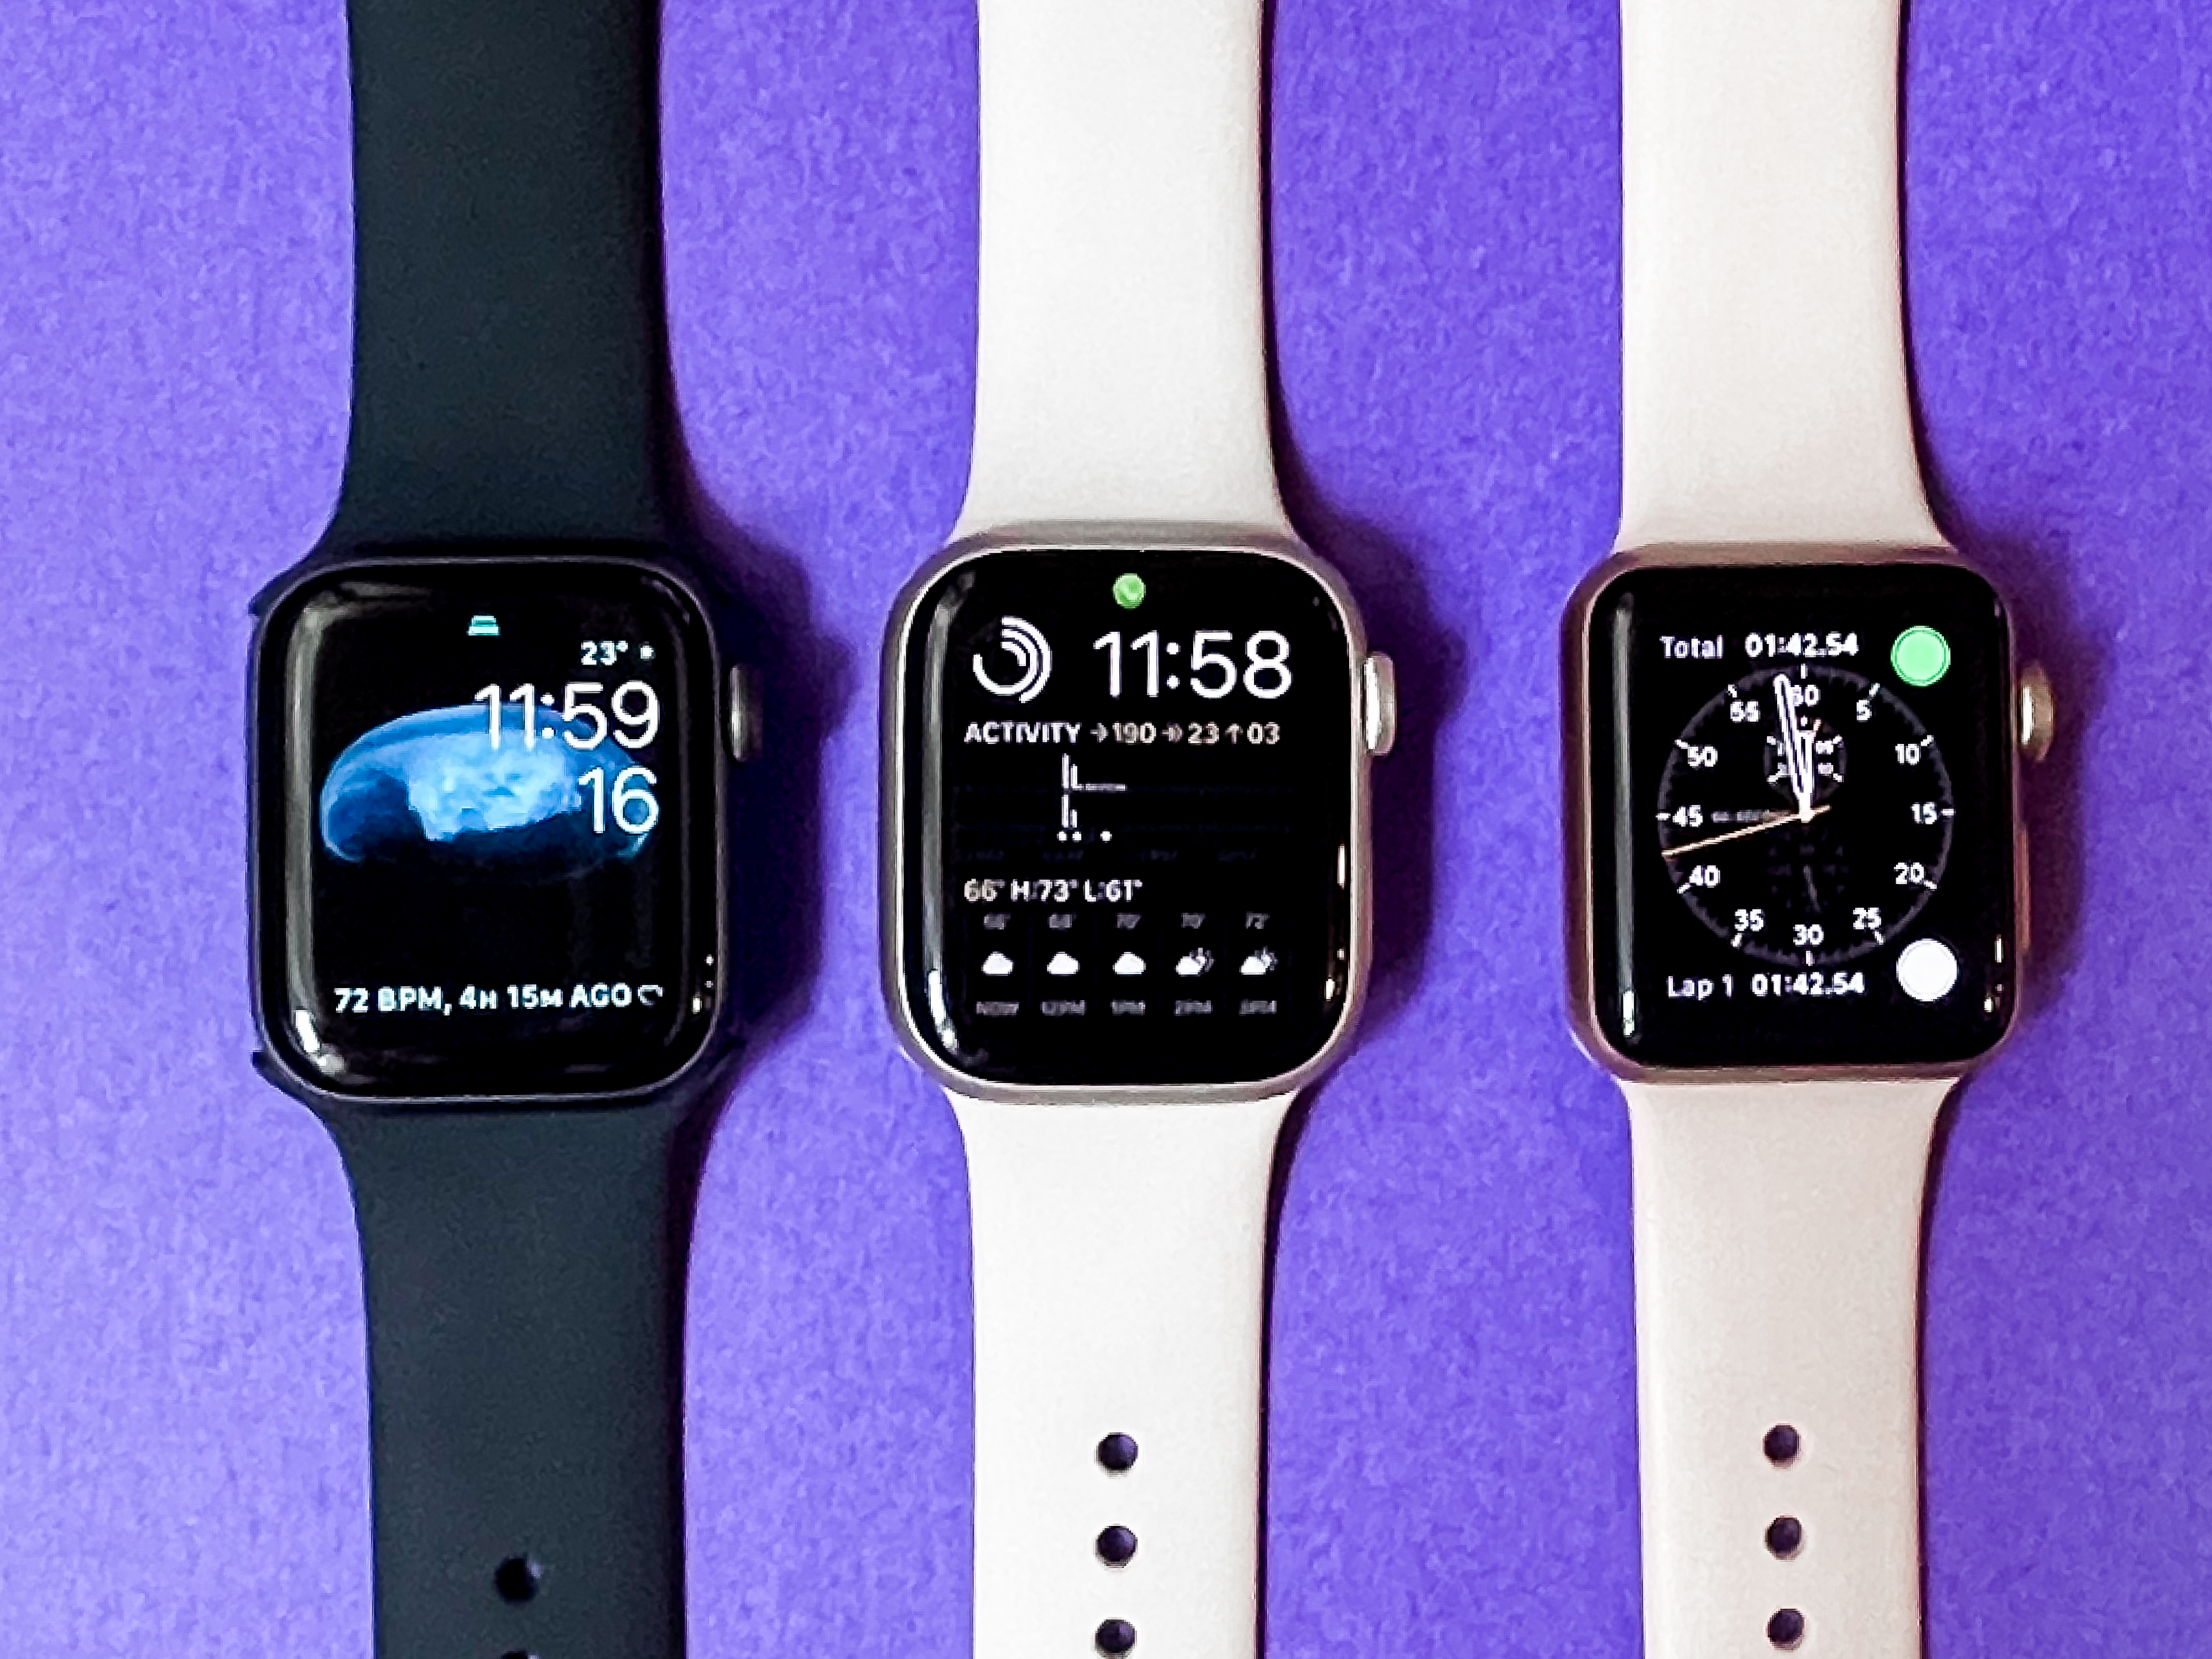 apple-watch-series-7-cnet-review-2021-024